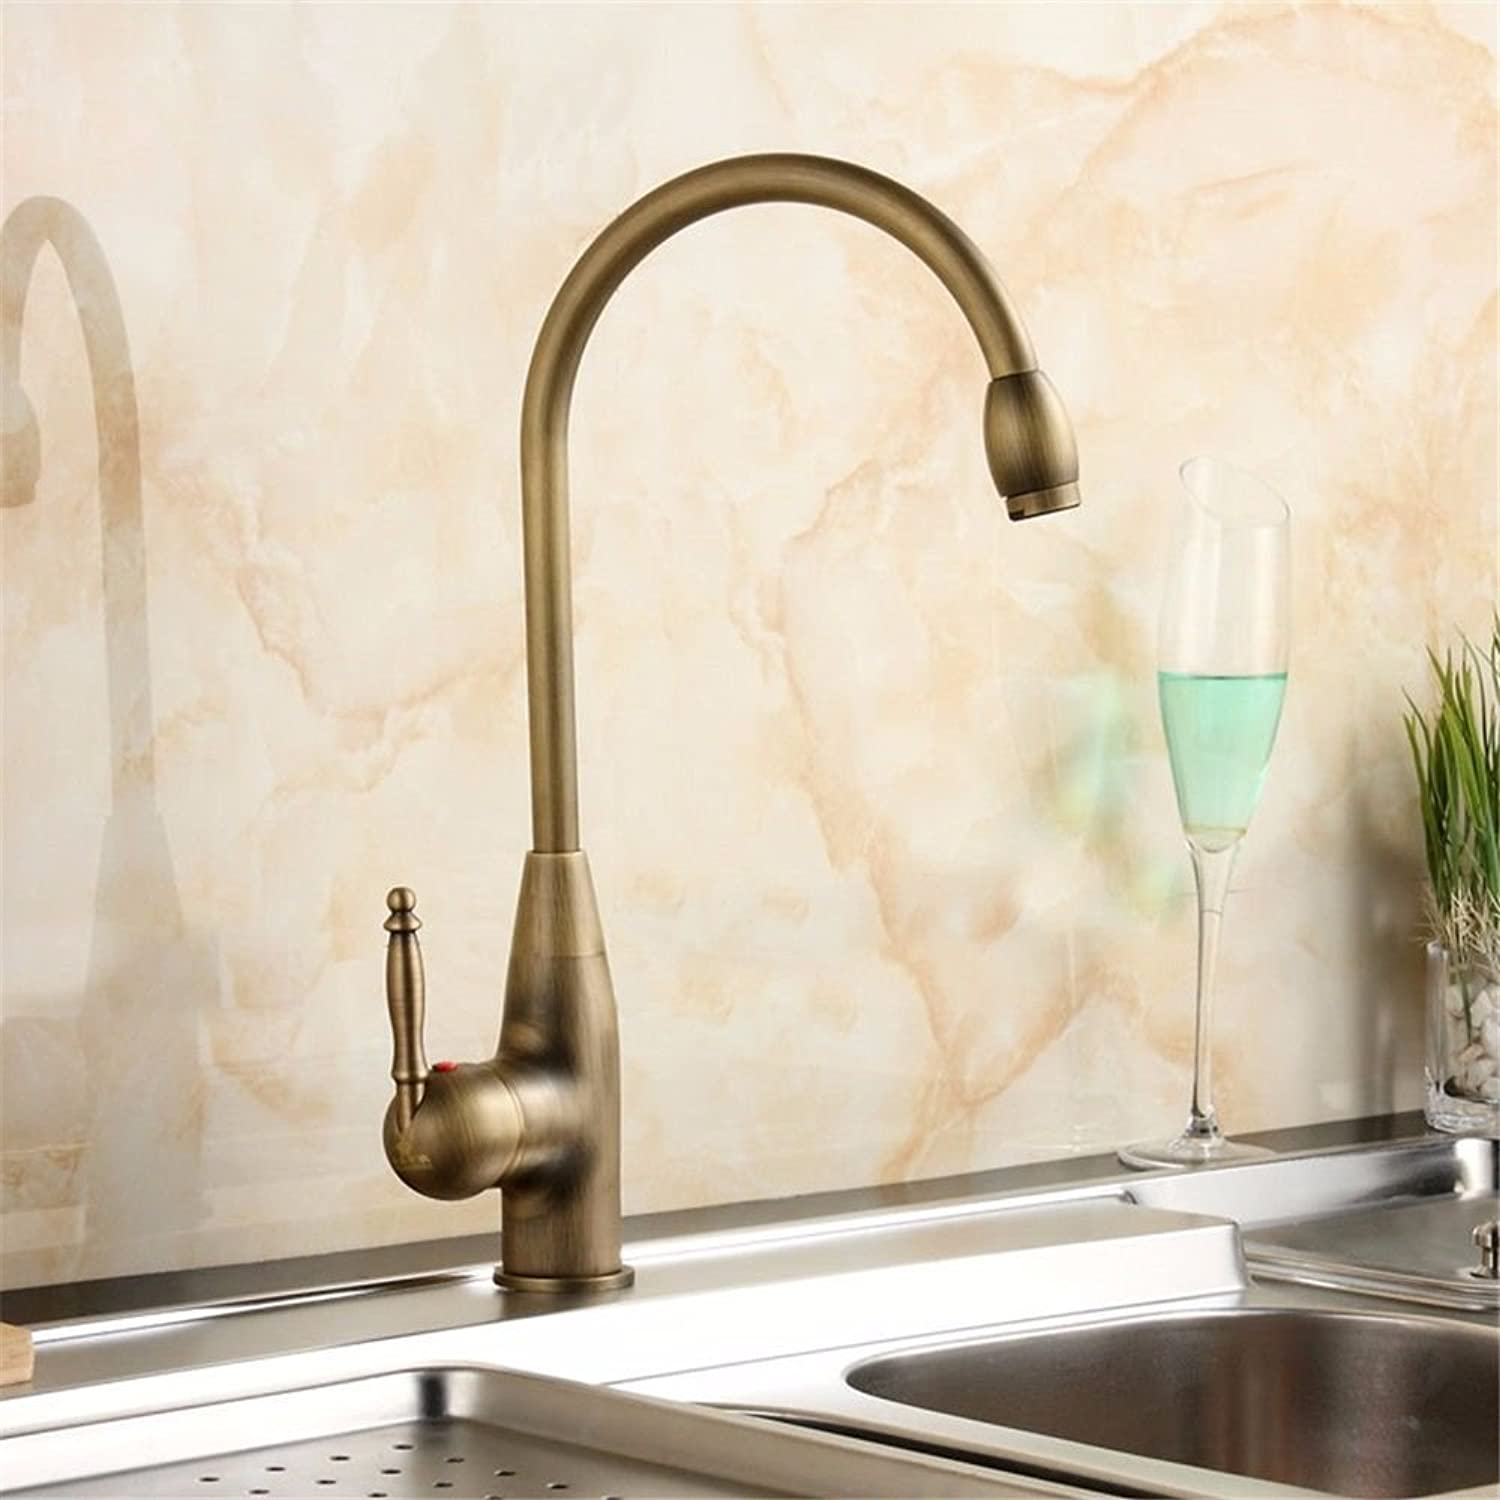 MARCU HOME Sink Mixer Tap Bathroom Kitchen Basin Tap Leakproof Save Water Antique Brass Creative Thick redating Kitchen Single Handle Single Hole Sink